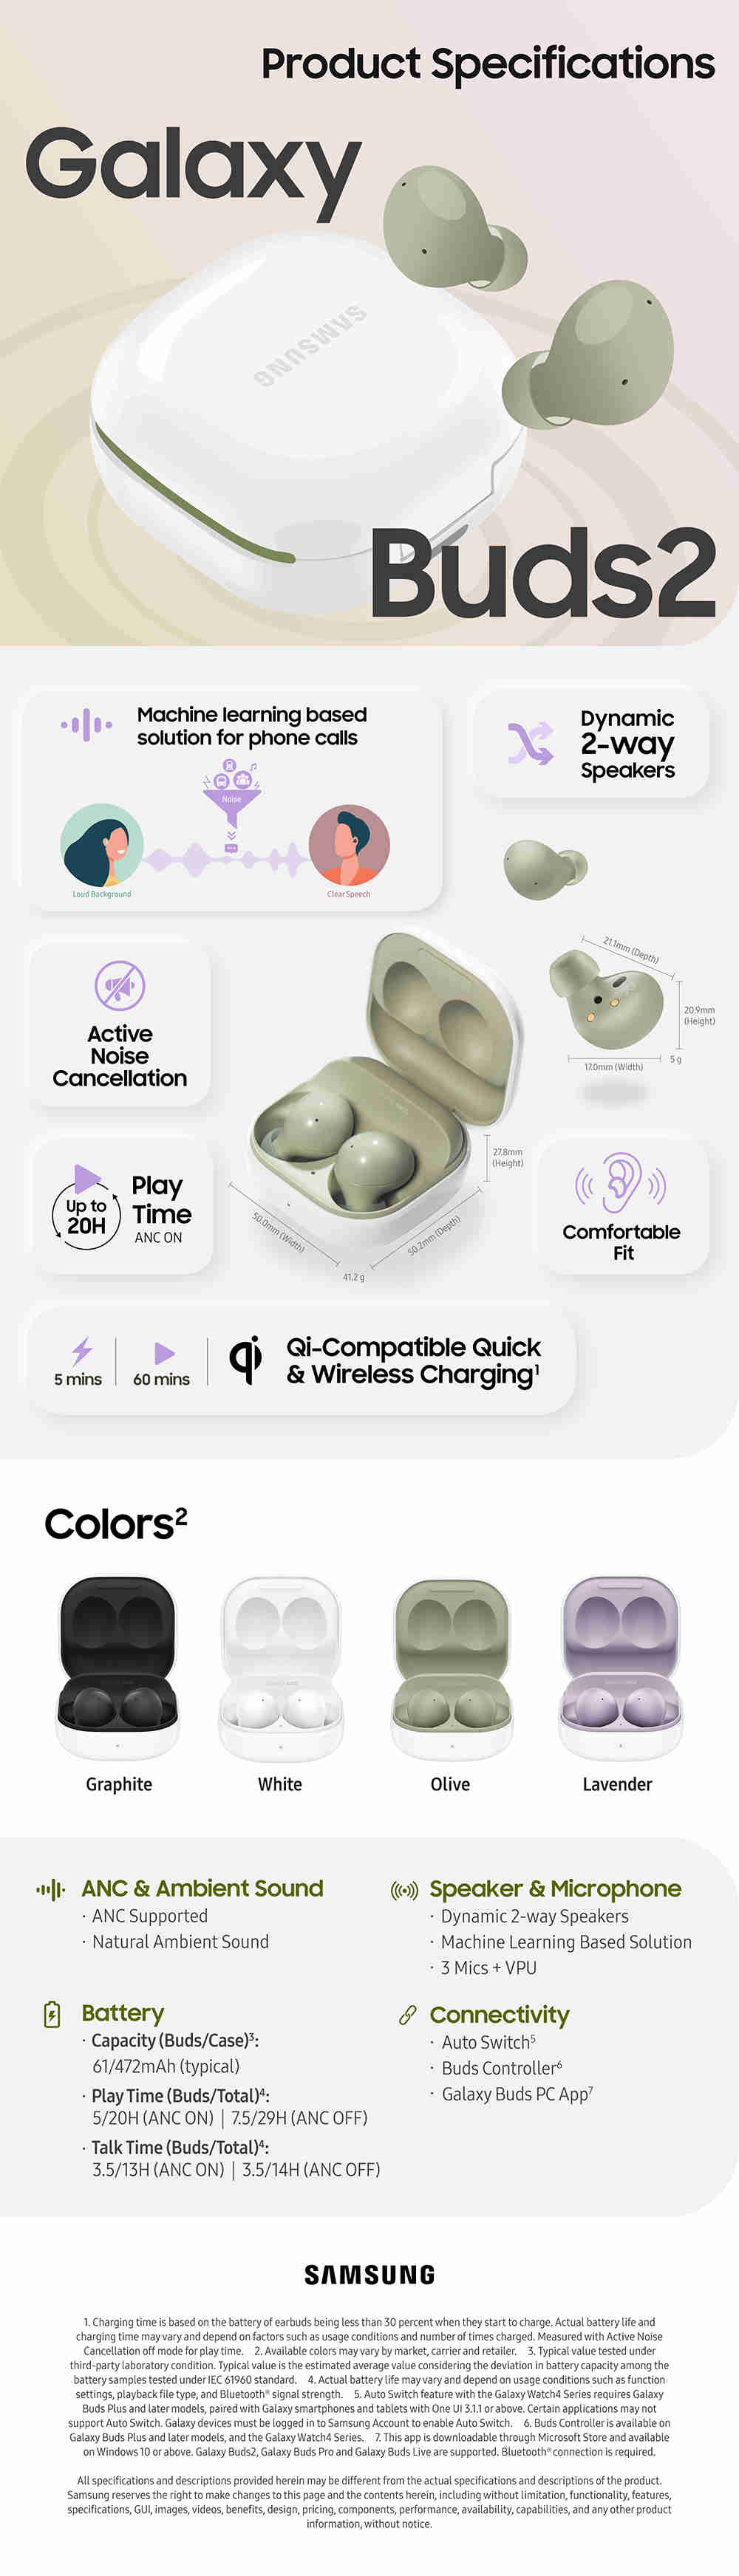 Galaxy_Buds2_product_specifications